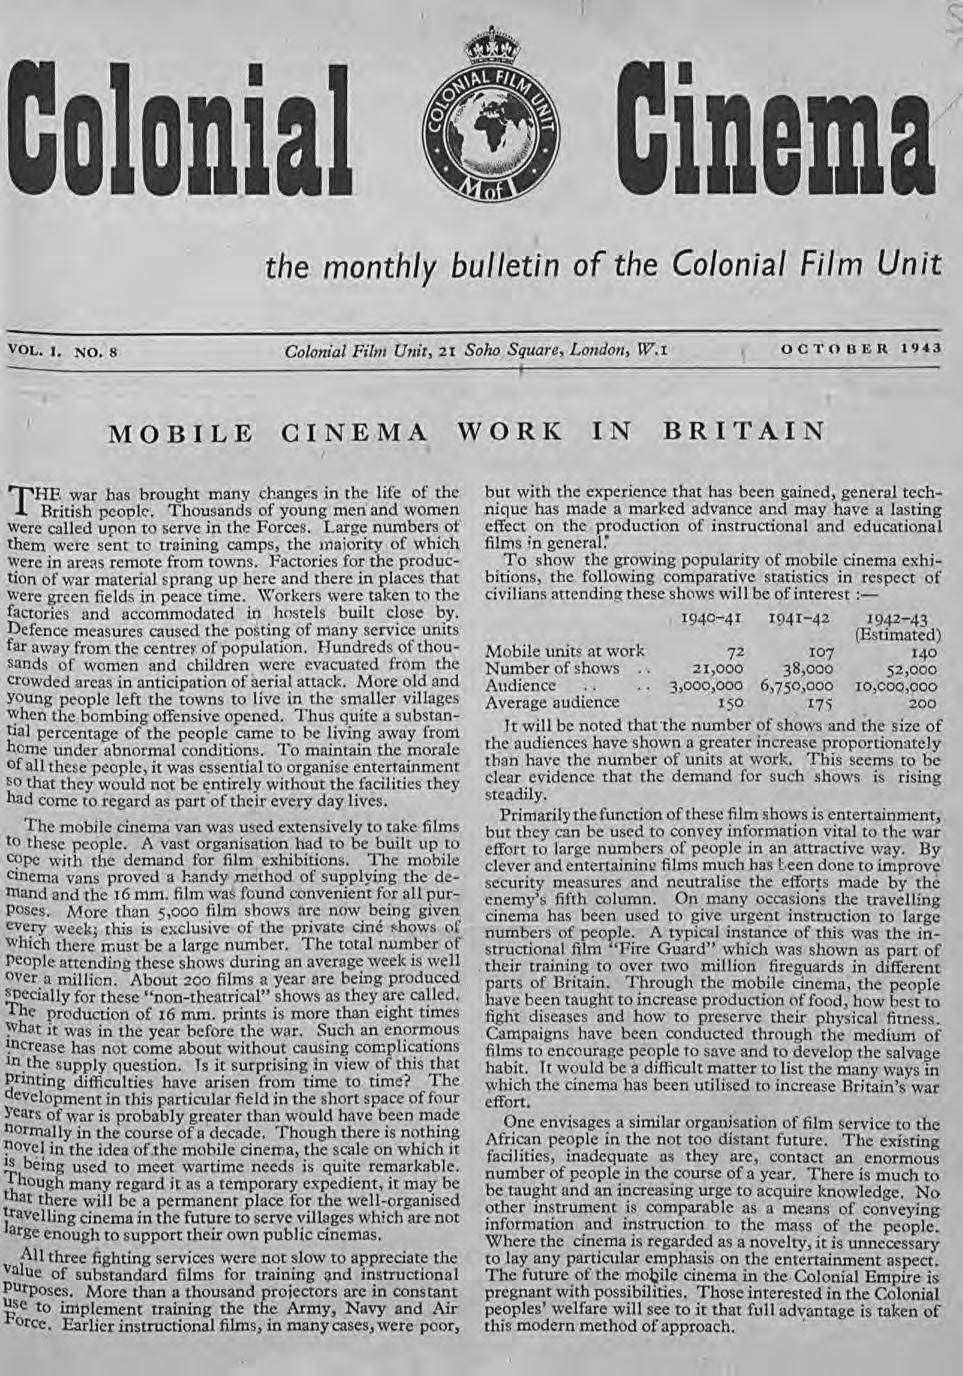 inemr the monthly bulletin of the Colon~al Film Unit VOL. I. NO.8 Colonial Film Unit,21 Soho Square, London, W.